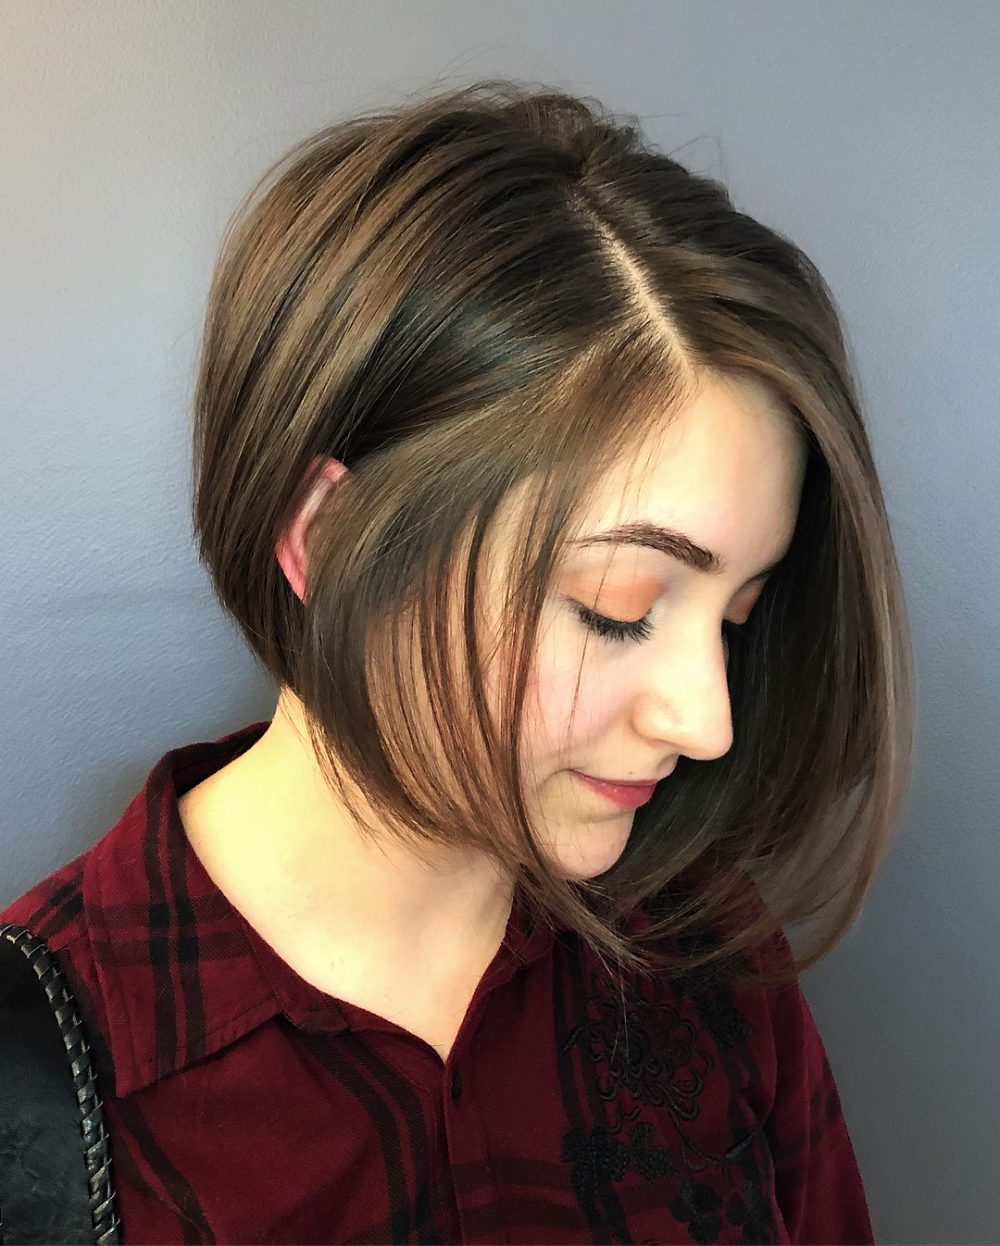 33 Flattering Short Hairstyles For Round Faces In 2018 Inside Short Haircuts For Women Round Face (View 4 of 25)